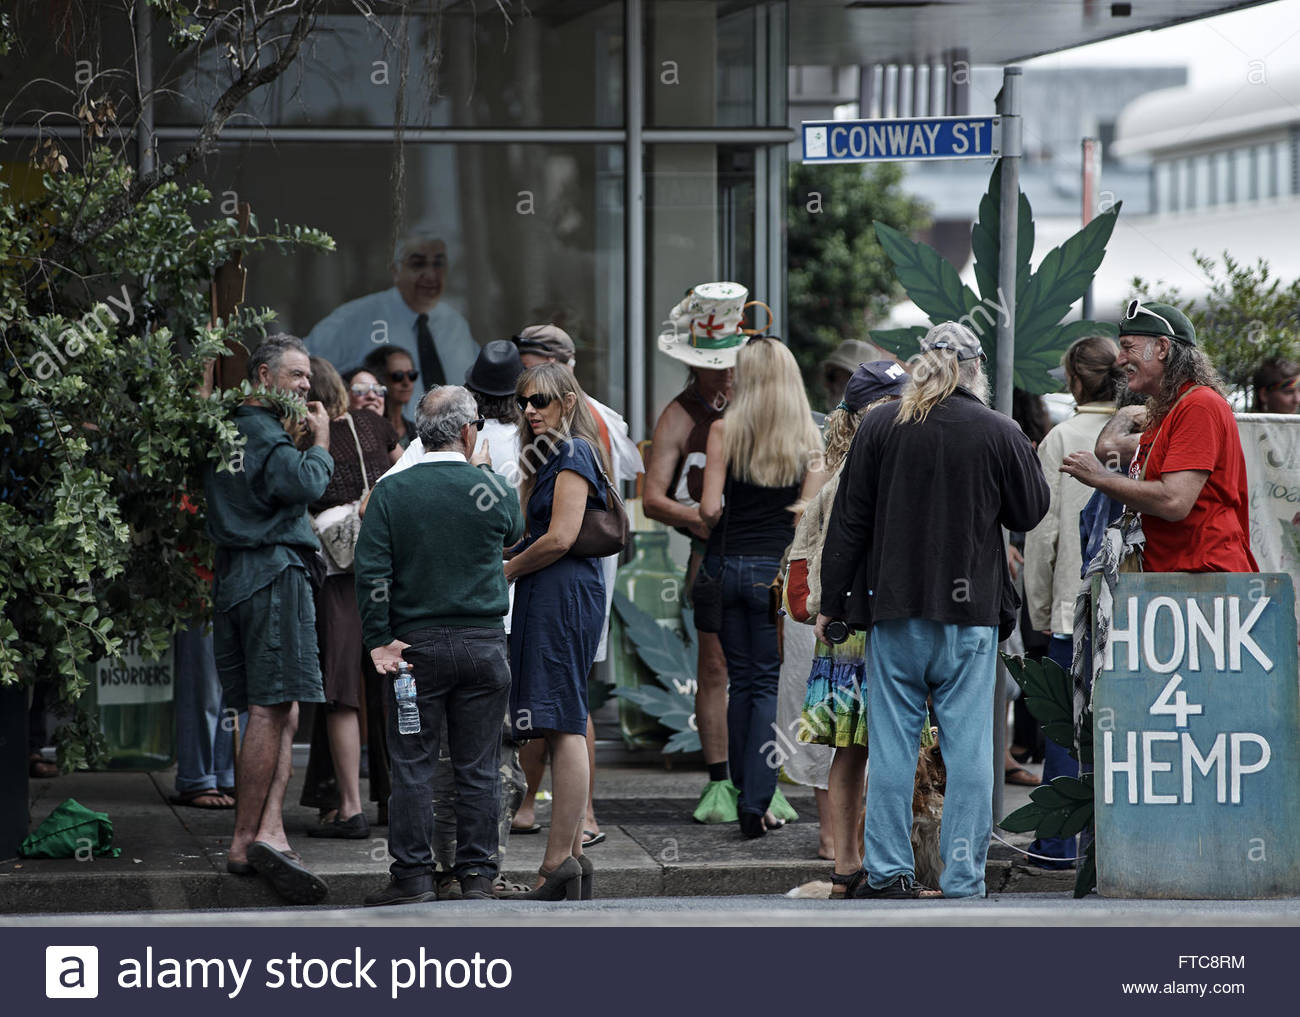 Protestors gathered outside Mayor Thomas Wilmot's office in Conway St., for the saliva-testing and hemp-law - Stock Image